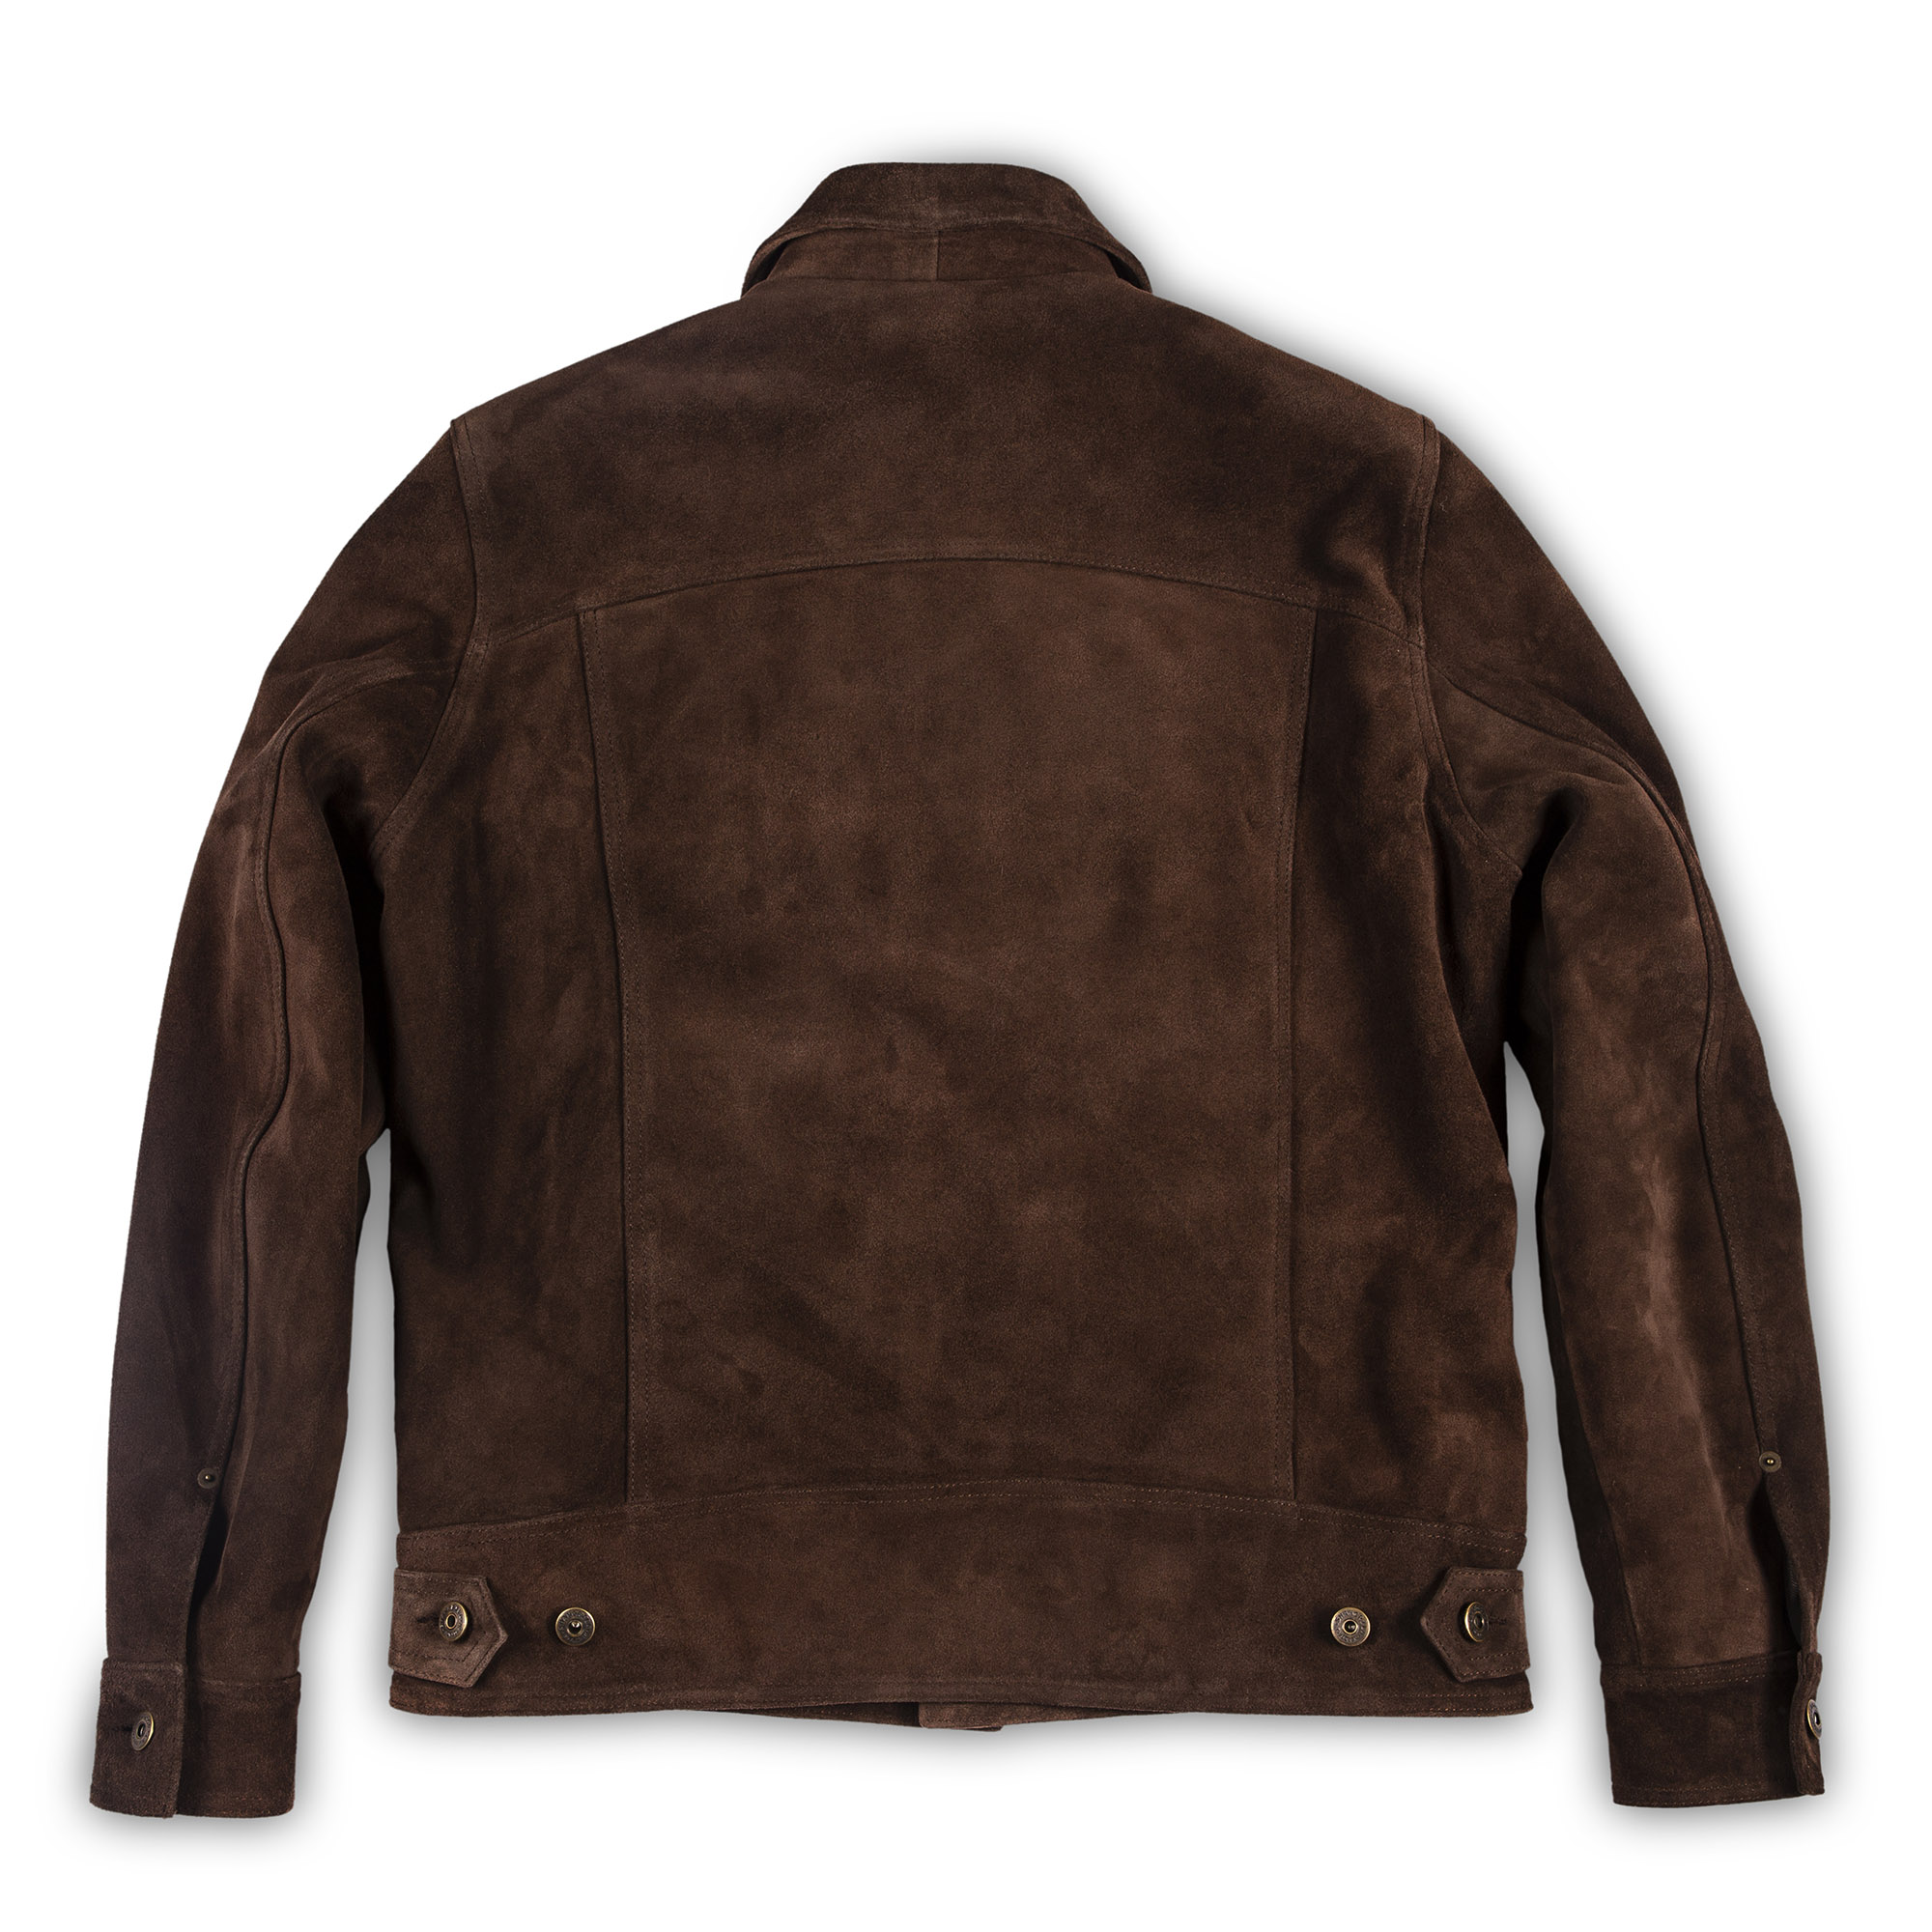 shangri-la-heritage-terracotta-brown-calfskin-suede-jacket-still-life-back